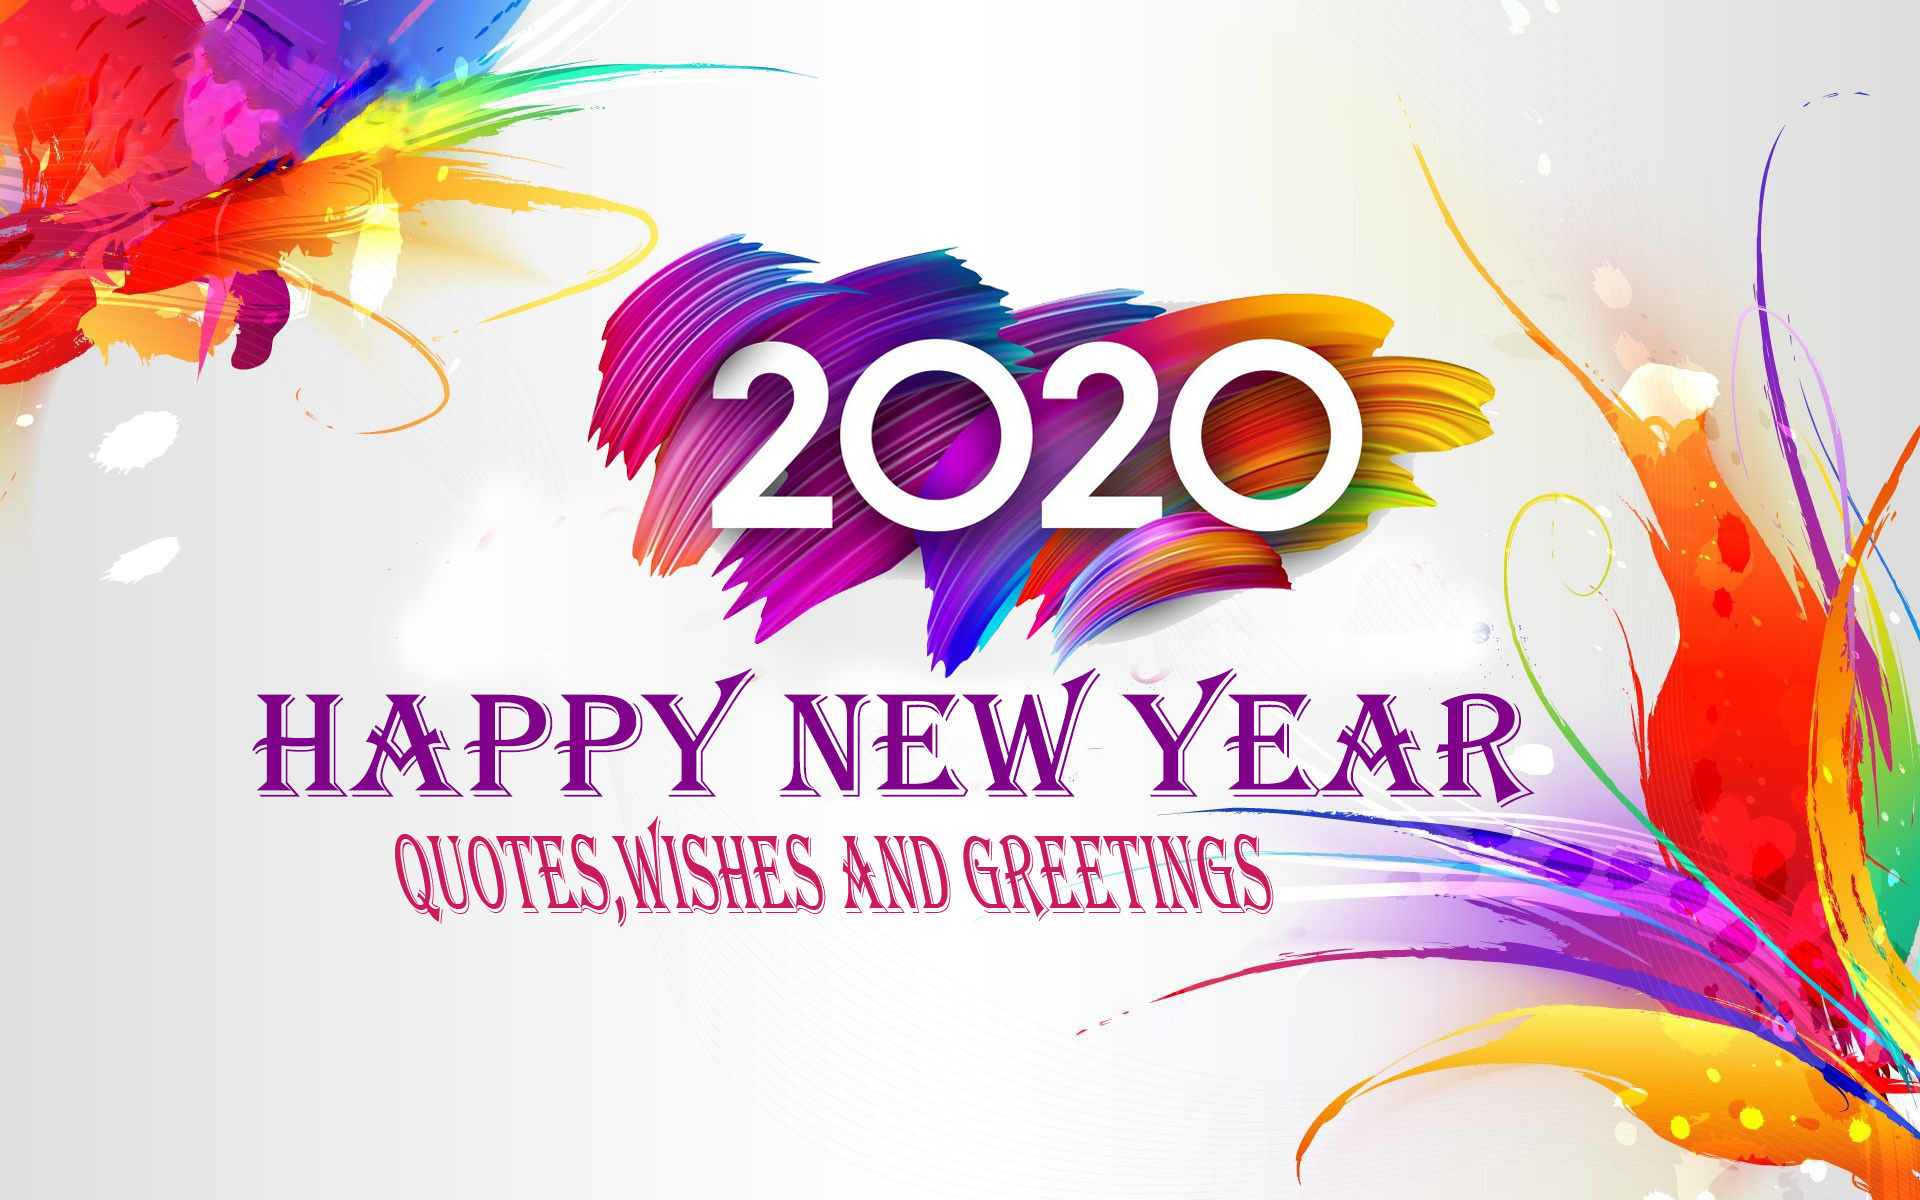 Happy New Year 2020 New Year Quotes Images Wishes Greetings 1920x1200